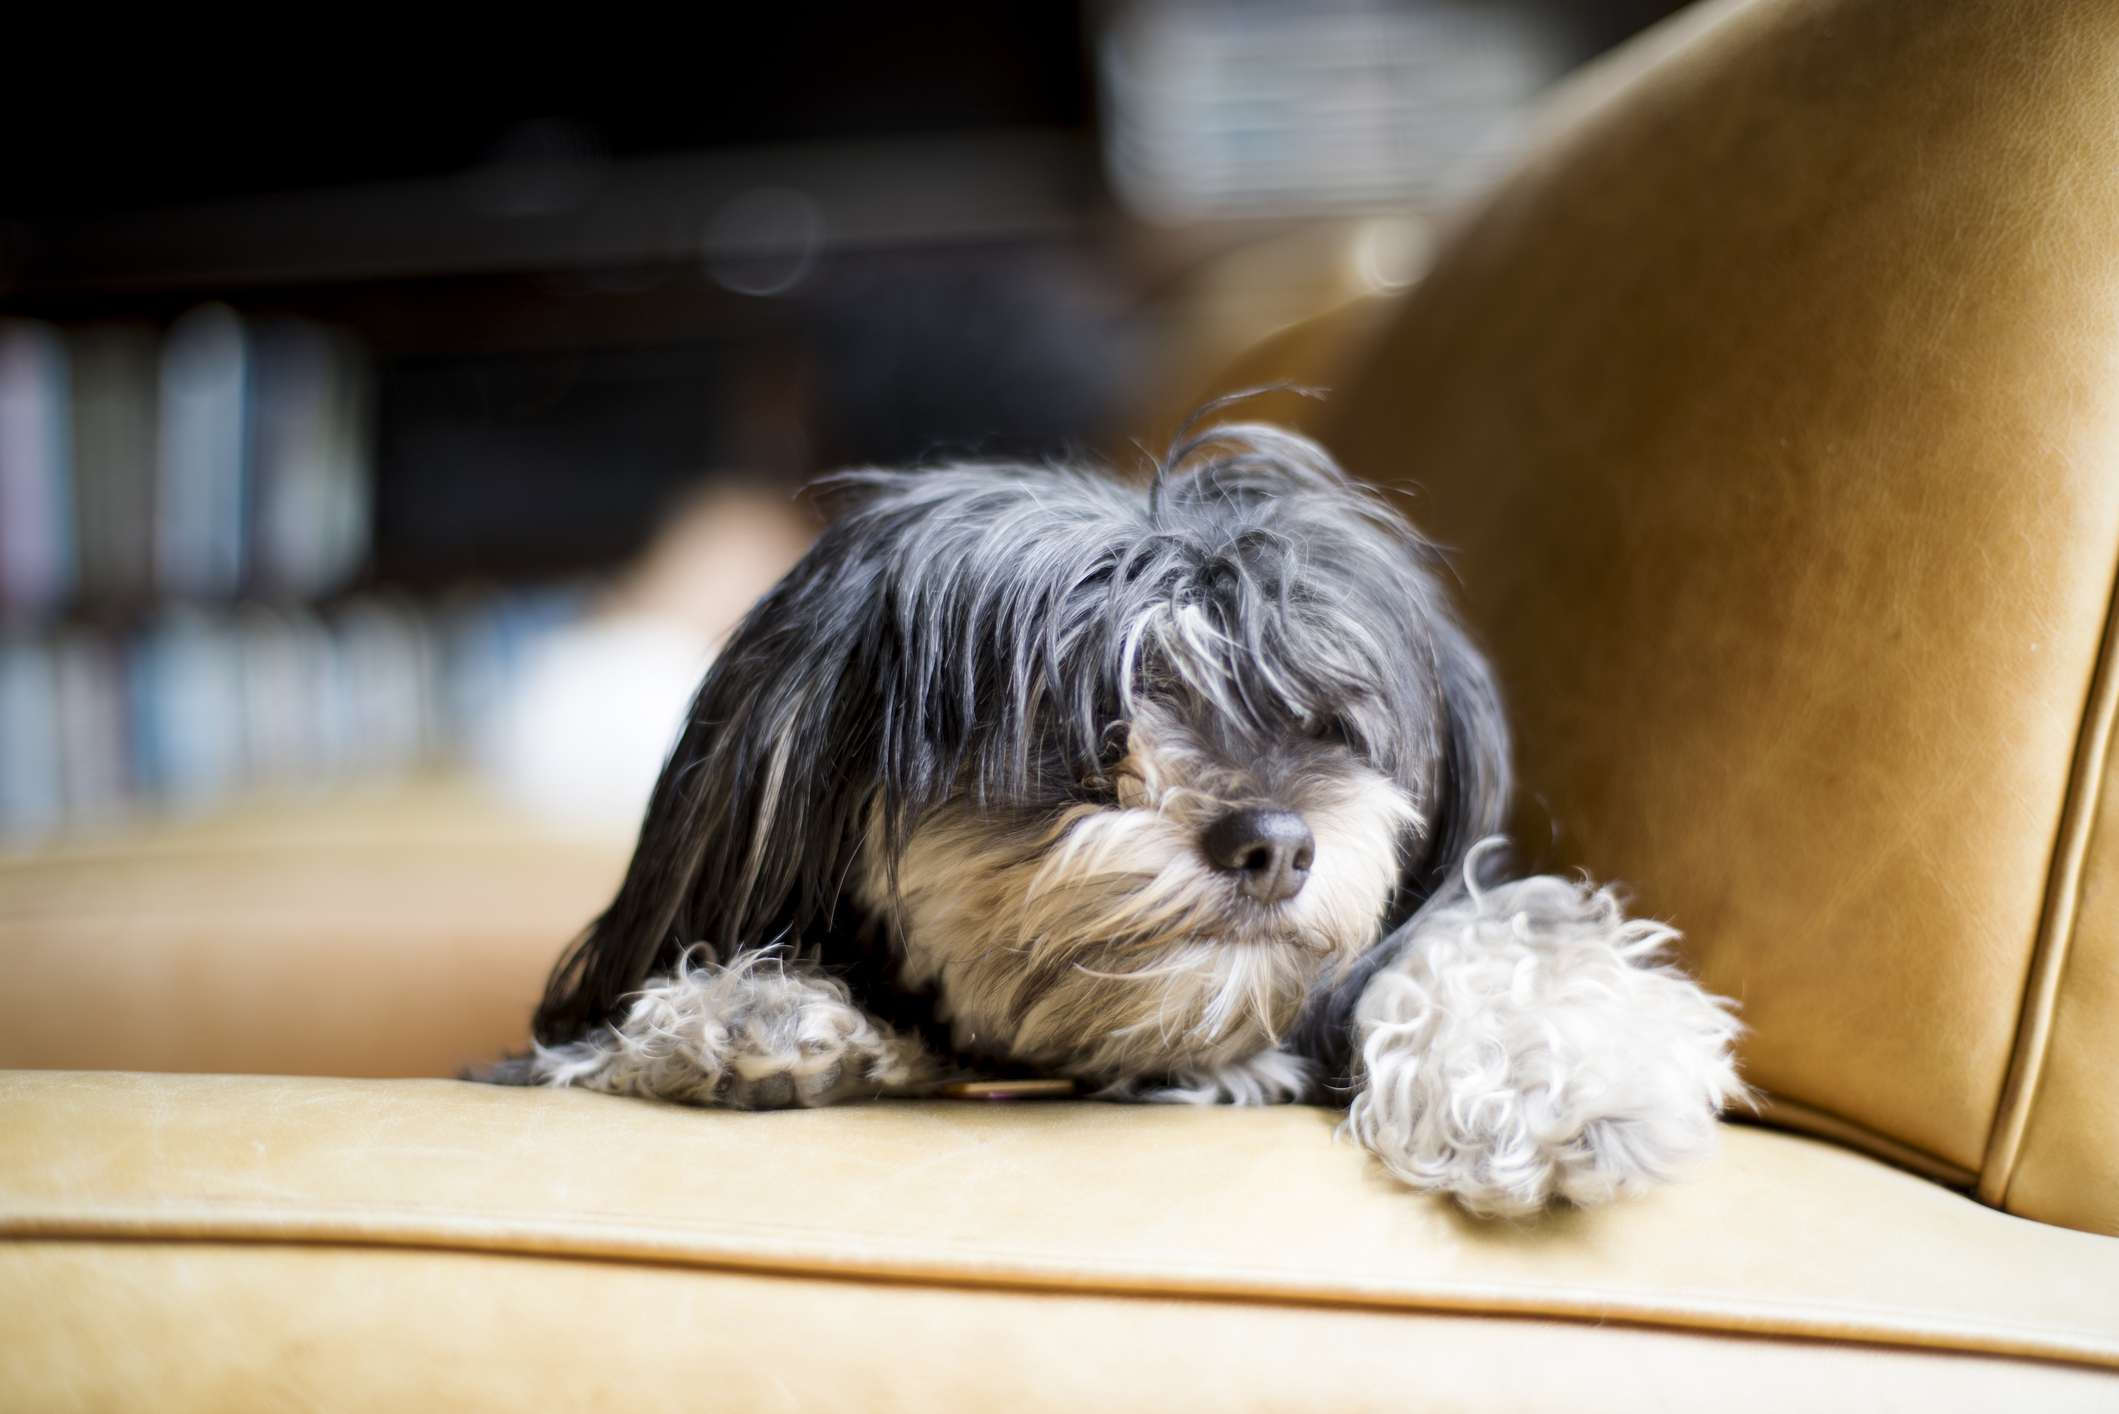 Gray and white Havanese dog lying on leather couch.